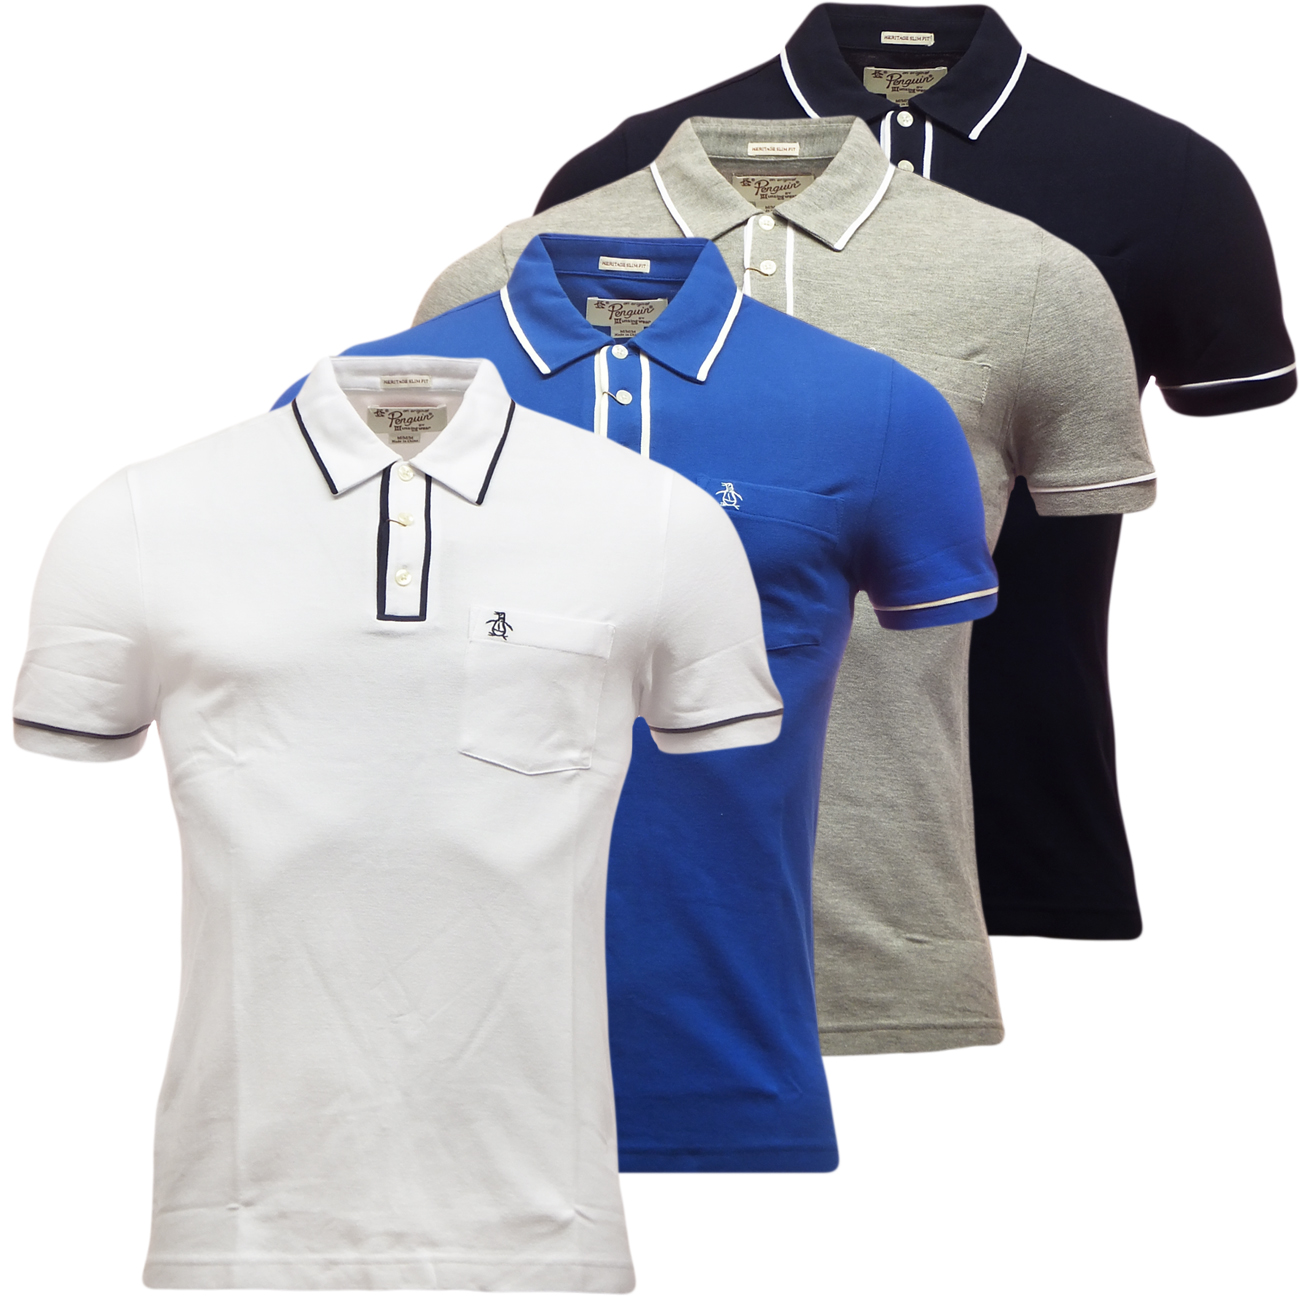 penguin mens earl polo shirt new smart casual polo 39 s new s m l xl ebay. Black Bedroom Furniture Sets. Home Design Ideas